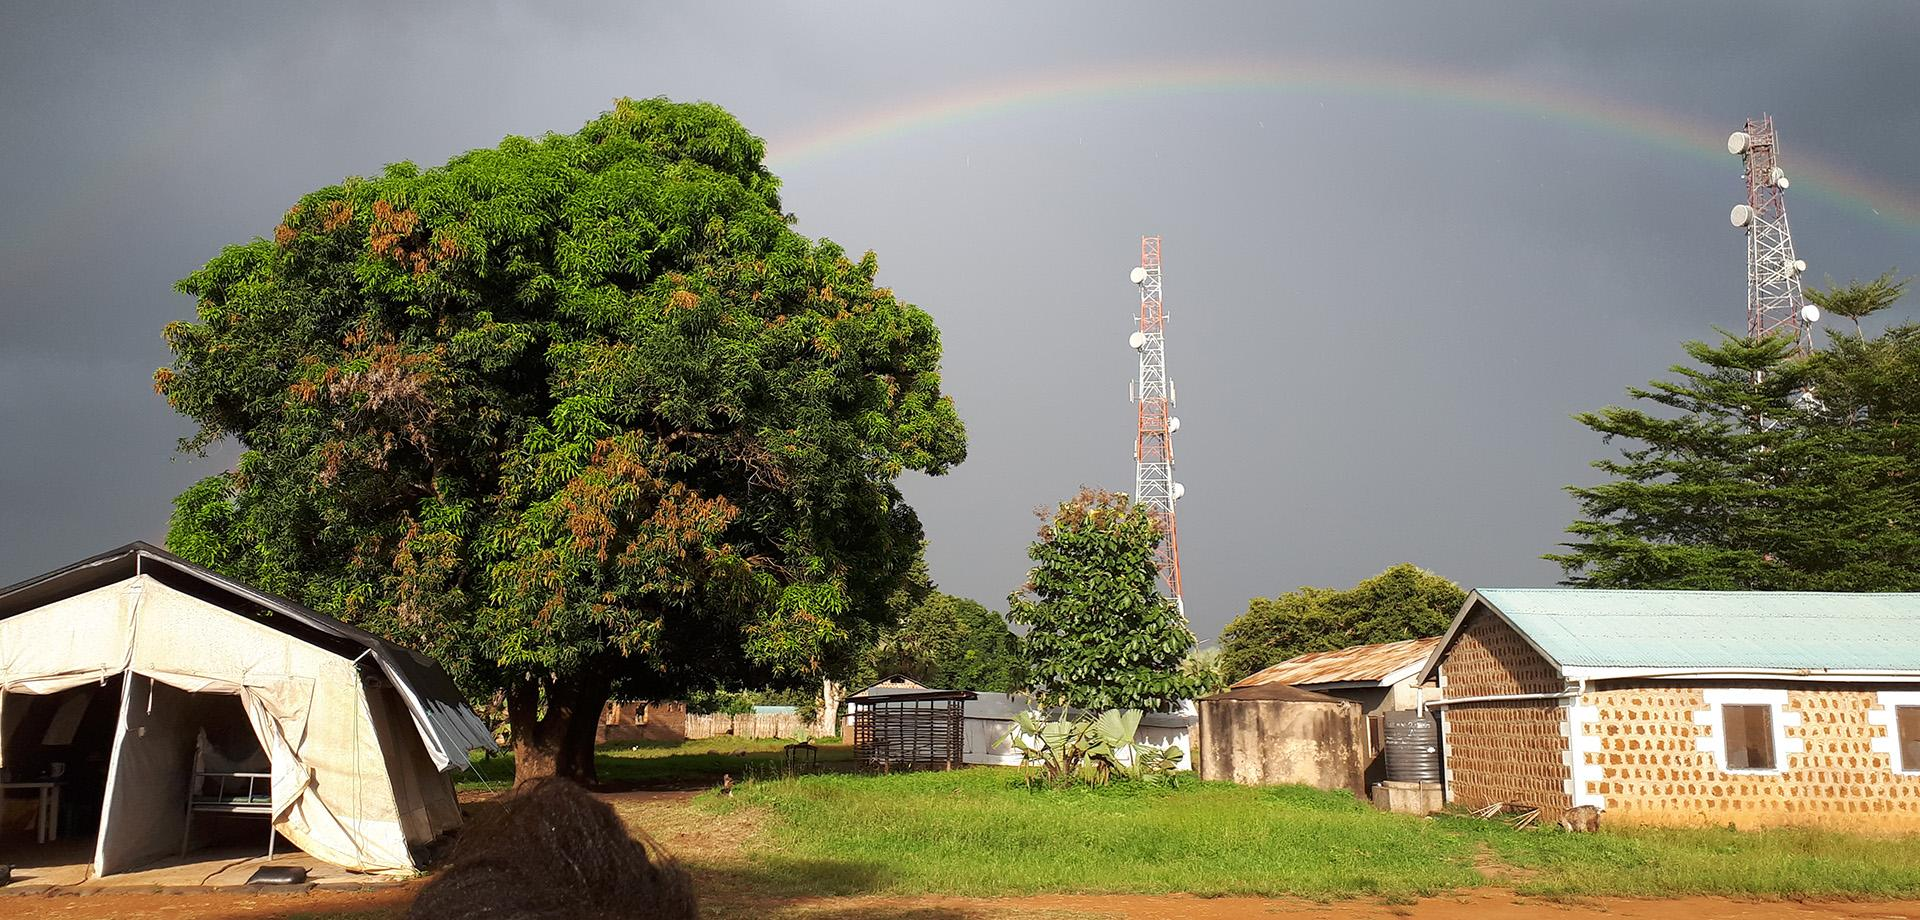 A rainbow over the MSF hospital at Mundri in South Sudan